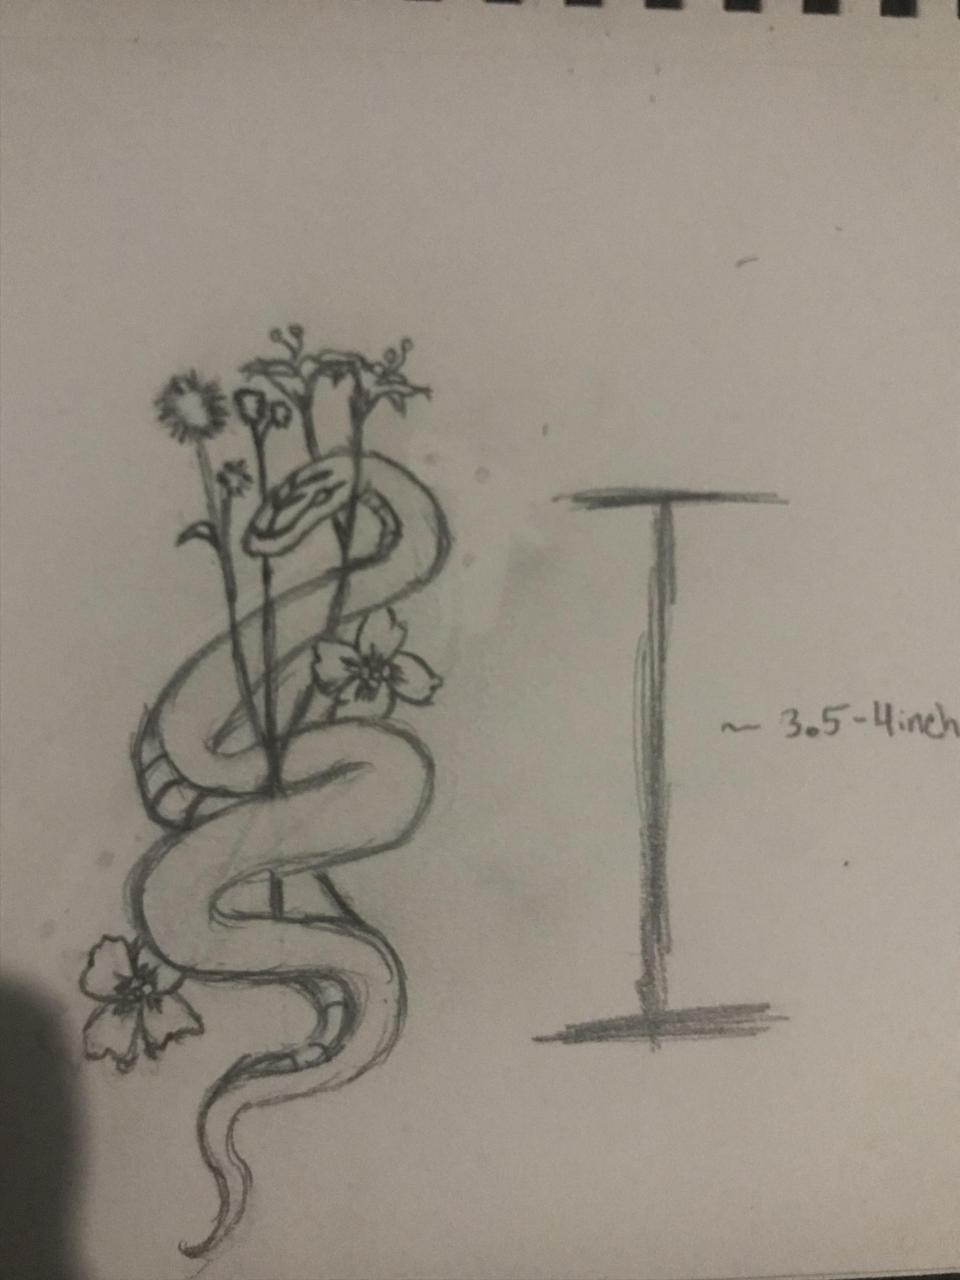 A quick sketch of a tattoo idea I have, any constructive advice is welcomed. Also, is it readable for around the size I want? (3.5/4inches)